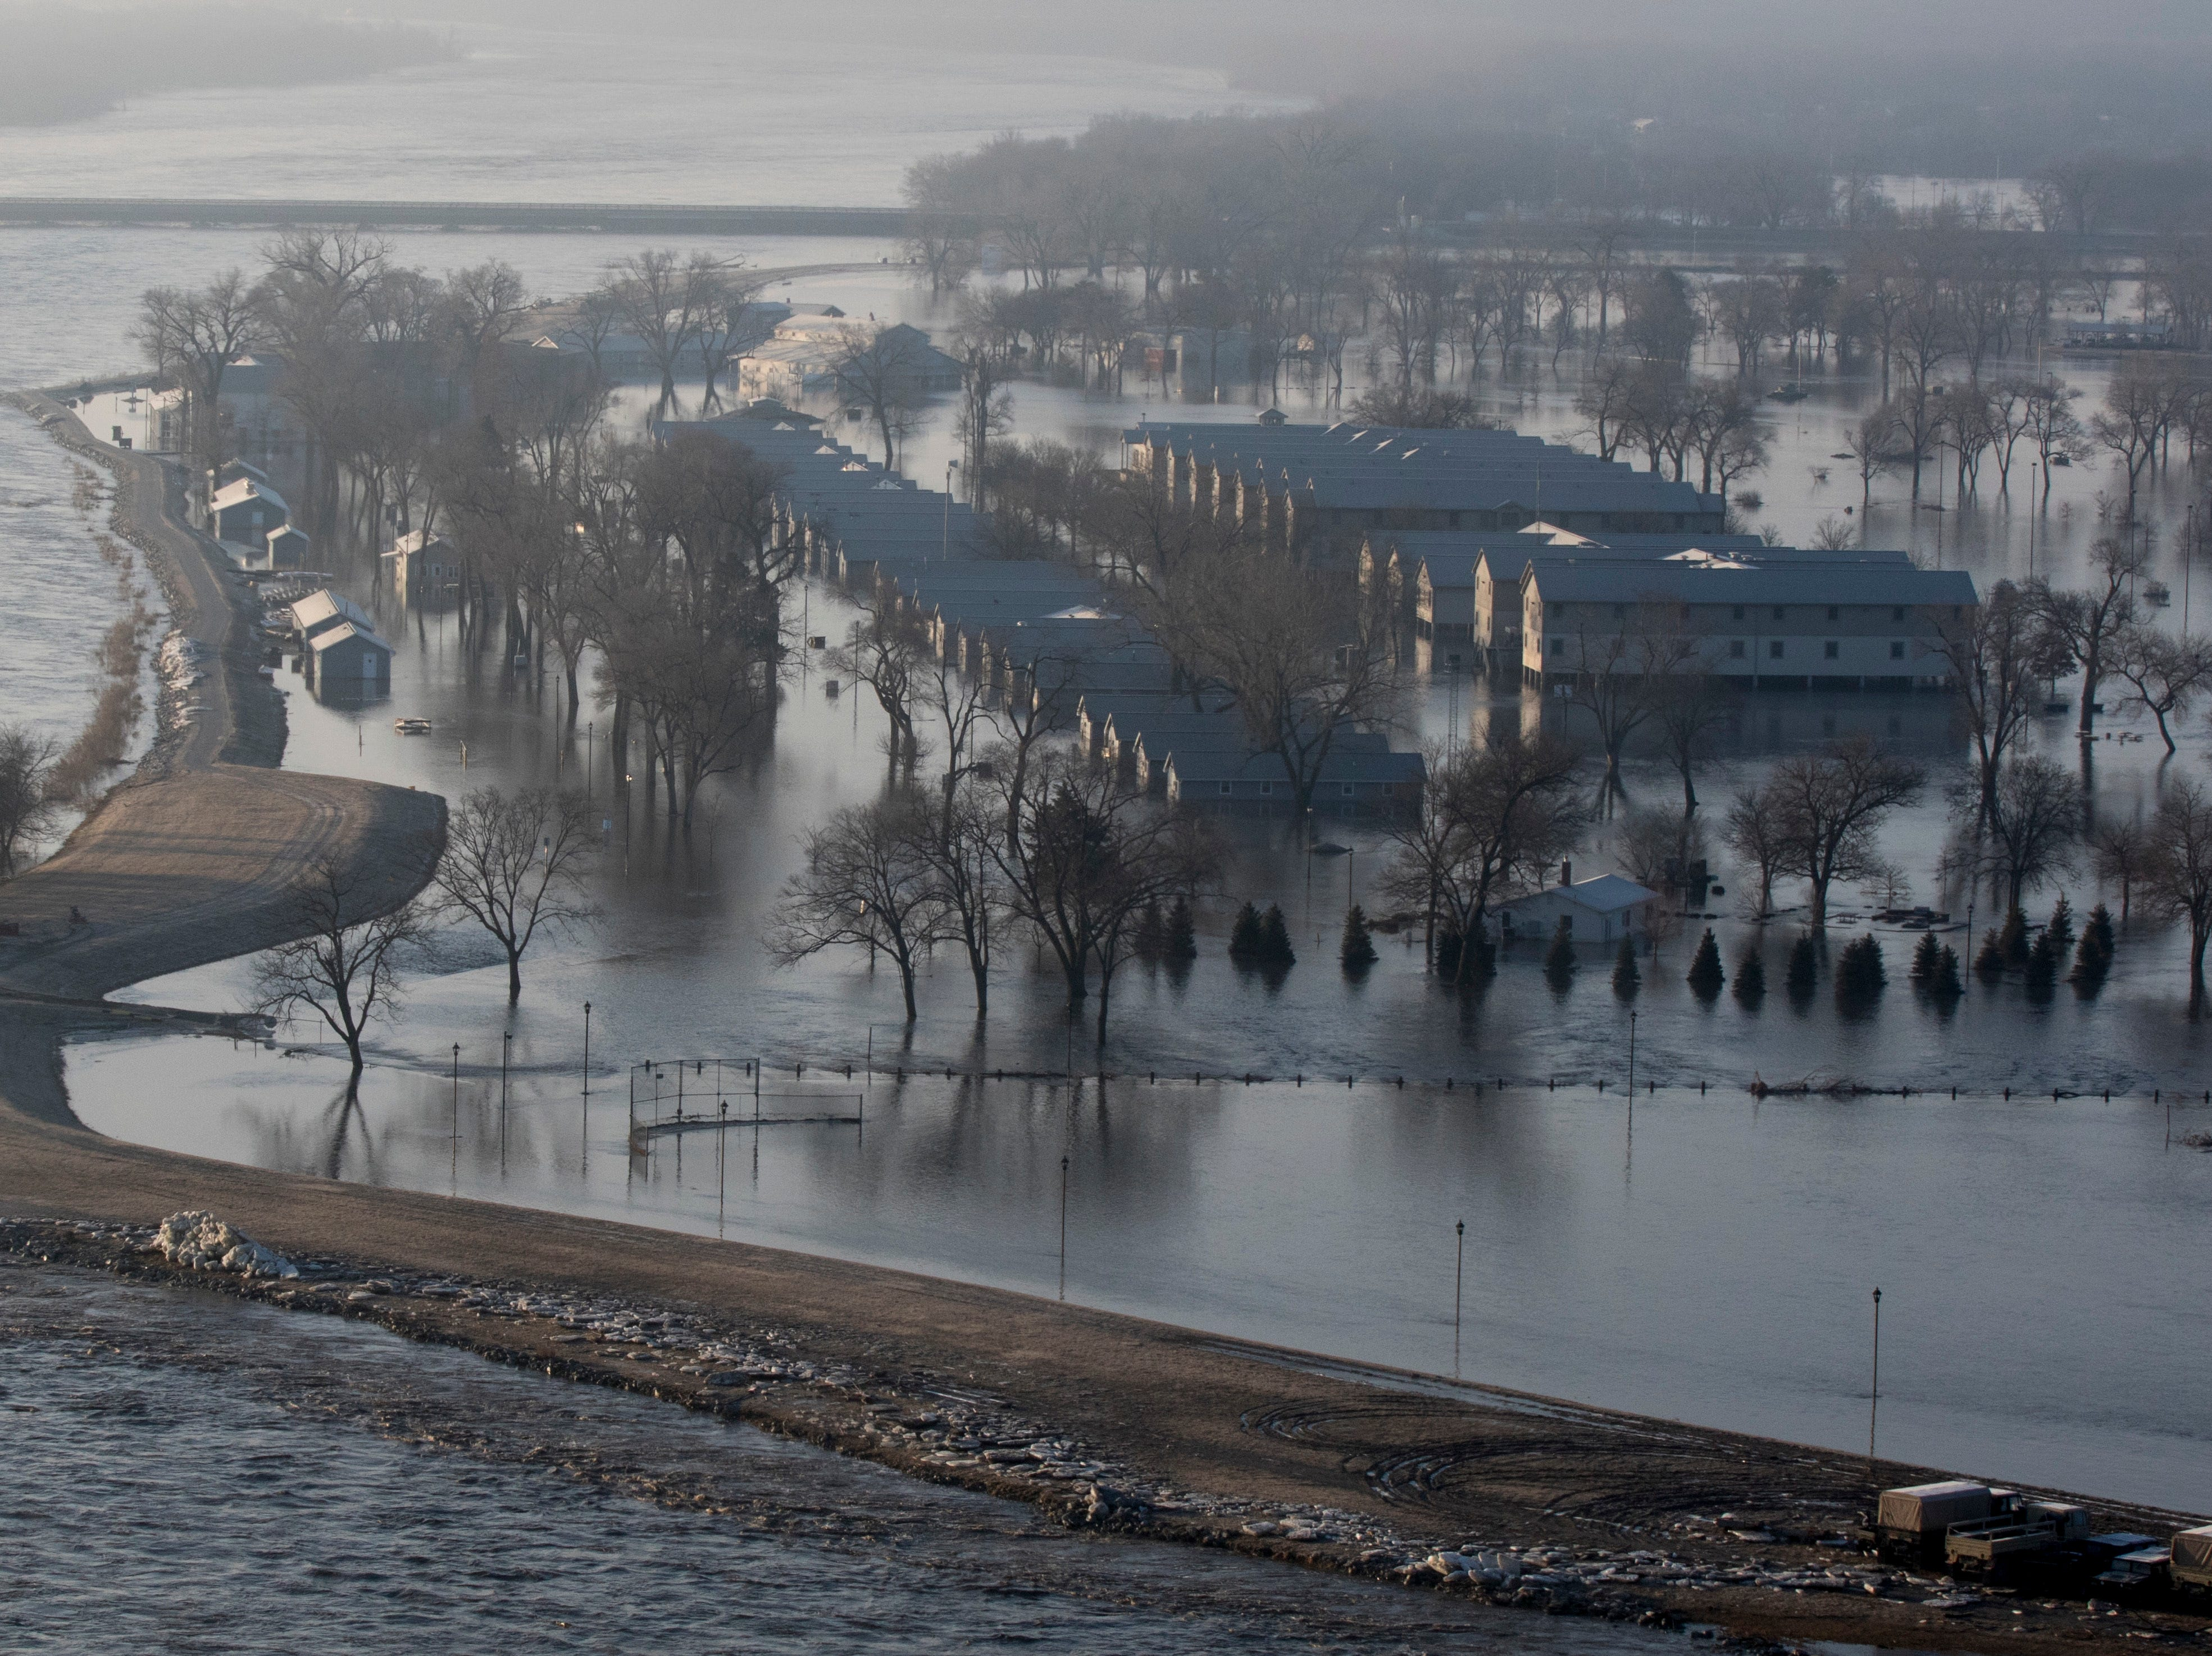 Flooding at the Camp Ashland in Ashland, Neb. on March 17, 2019. The levee to the north of the camp broke and water from the swollen Platte River poured thousands of gallons of water into the low-lying area trapping vehicles on the high ground and damaging buildings.